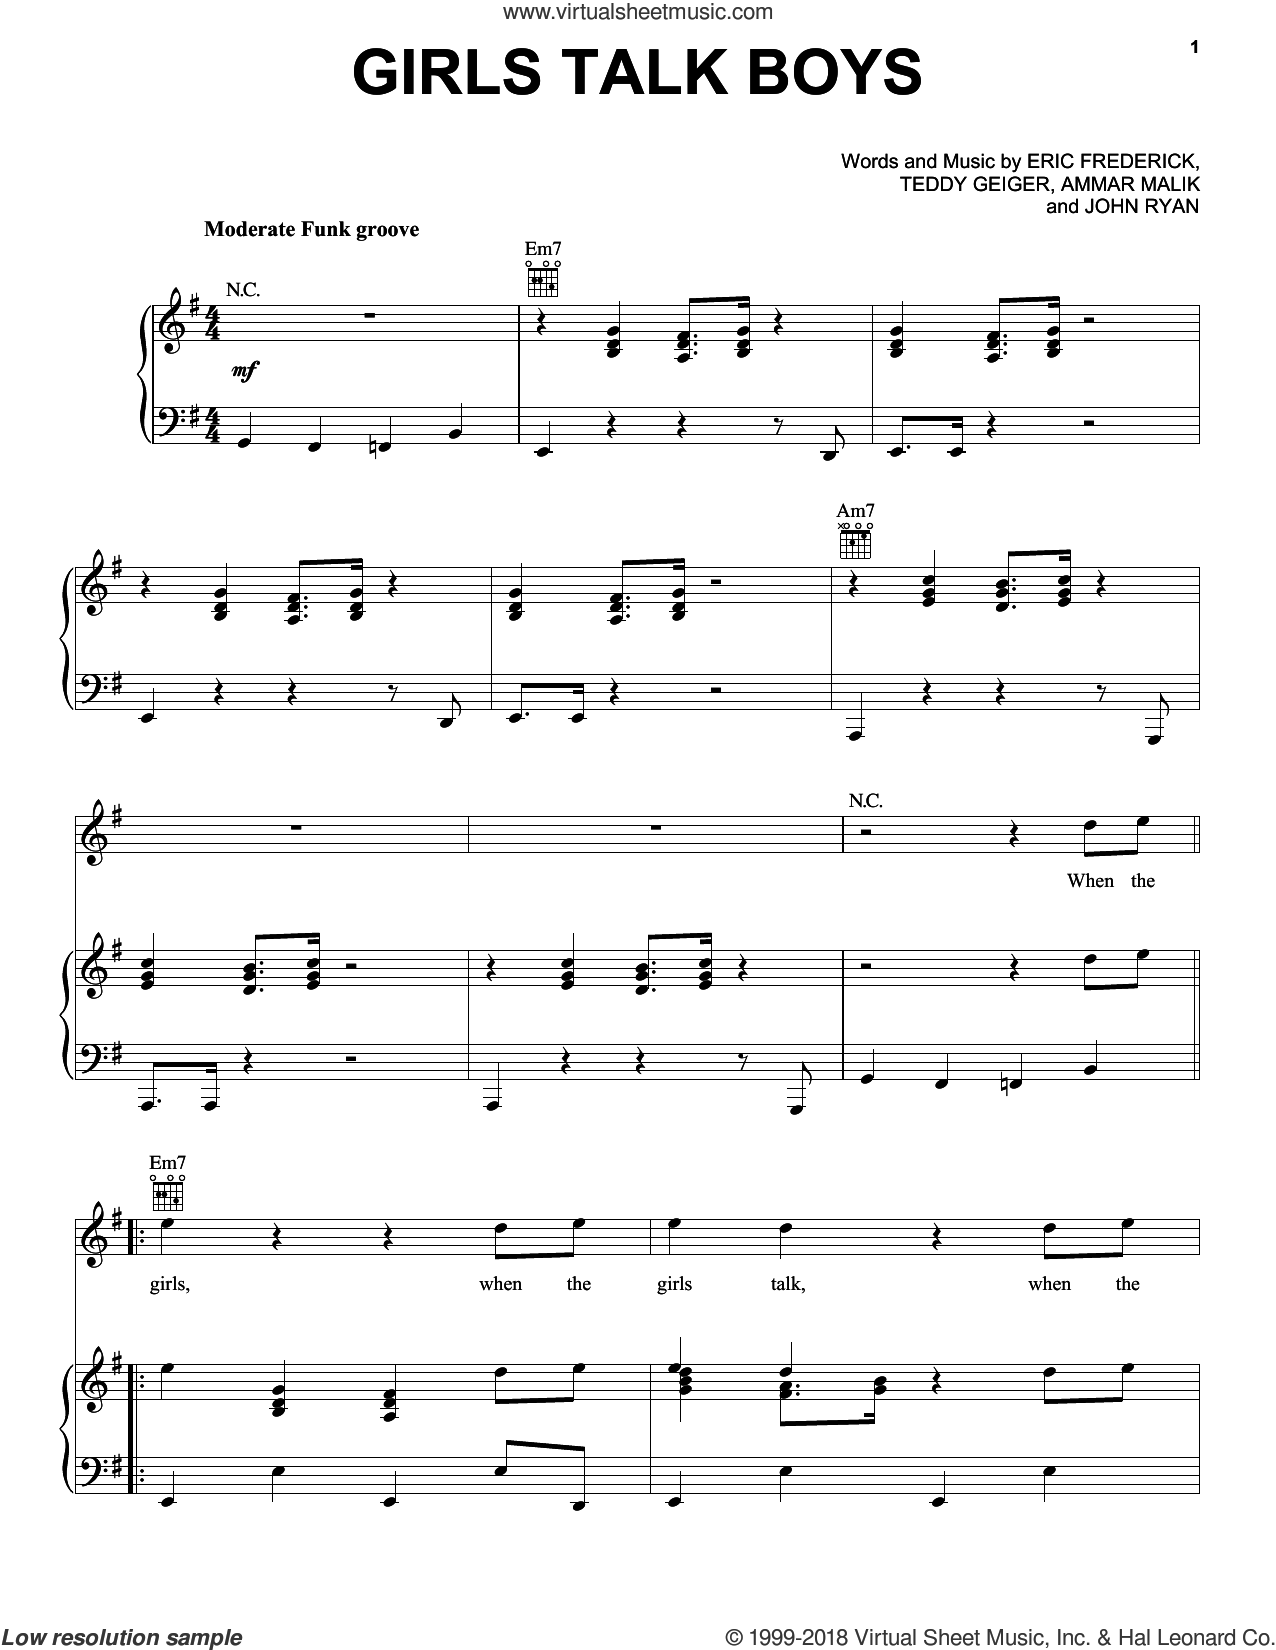 Girls Talk Boys sheet music for voice, piano or guitar by Teddy Geiger, Ammar Malik and John Ryan. Score Image Preview.